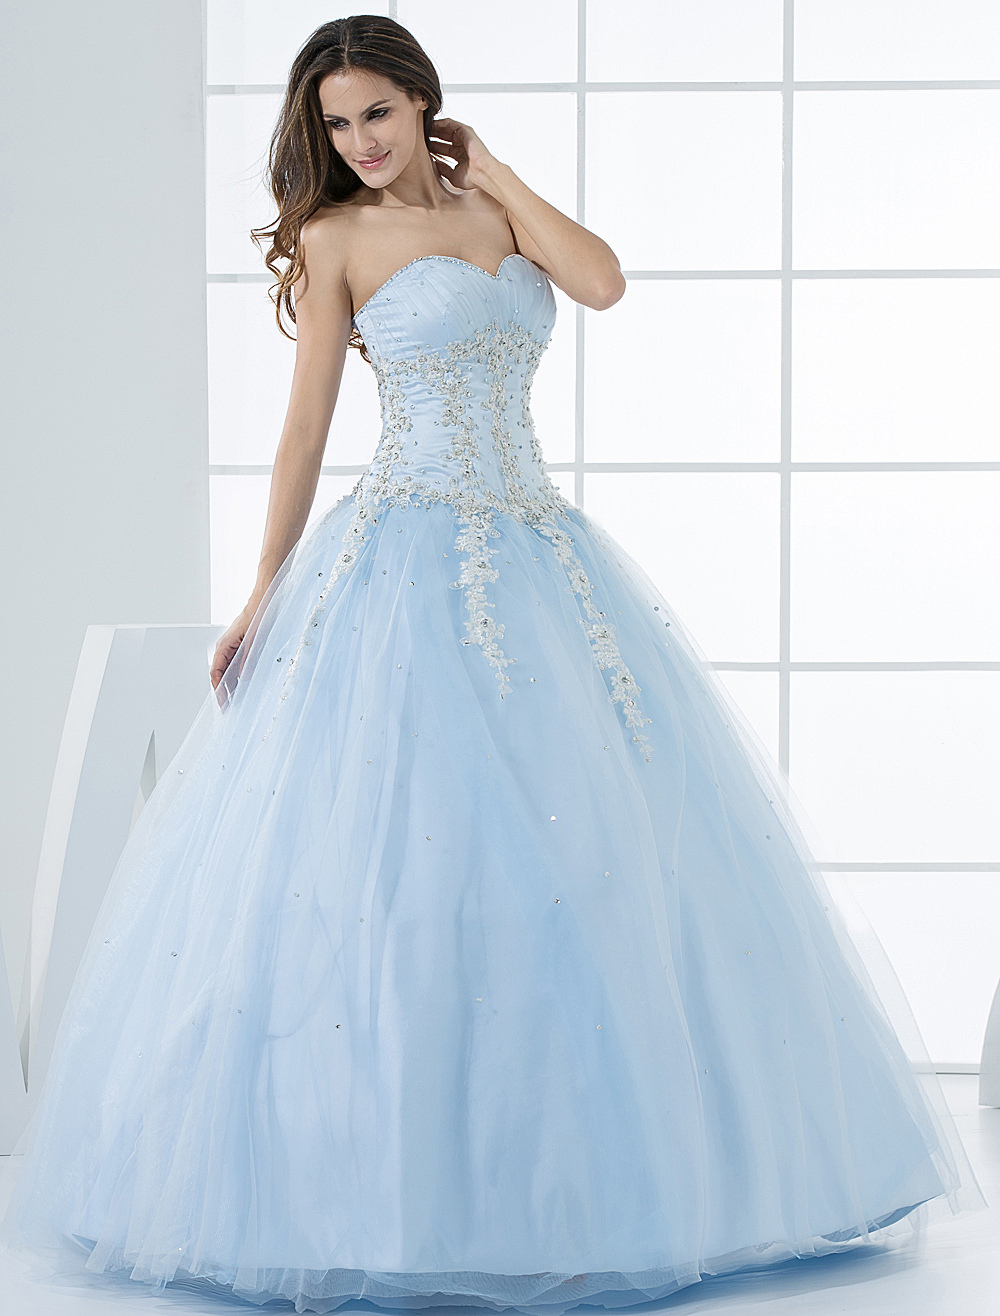 ae0c6fd208d Princess Wedding Dresses Pastel Blue Quinceanera Dress Lace Applique  Sweetheart Strapless Beading Tulle Floor Length Bridal Gown - Milanoo.com